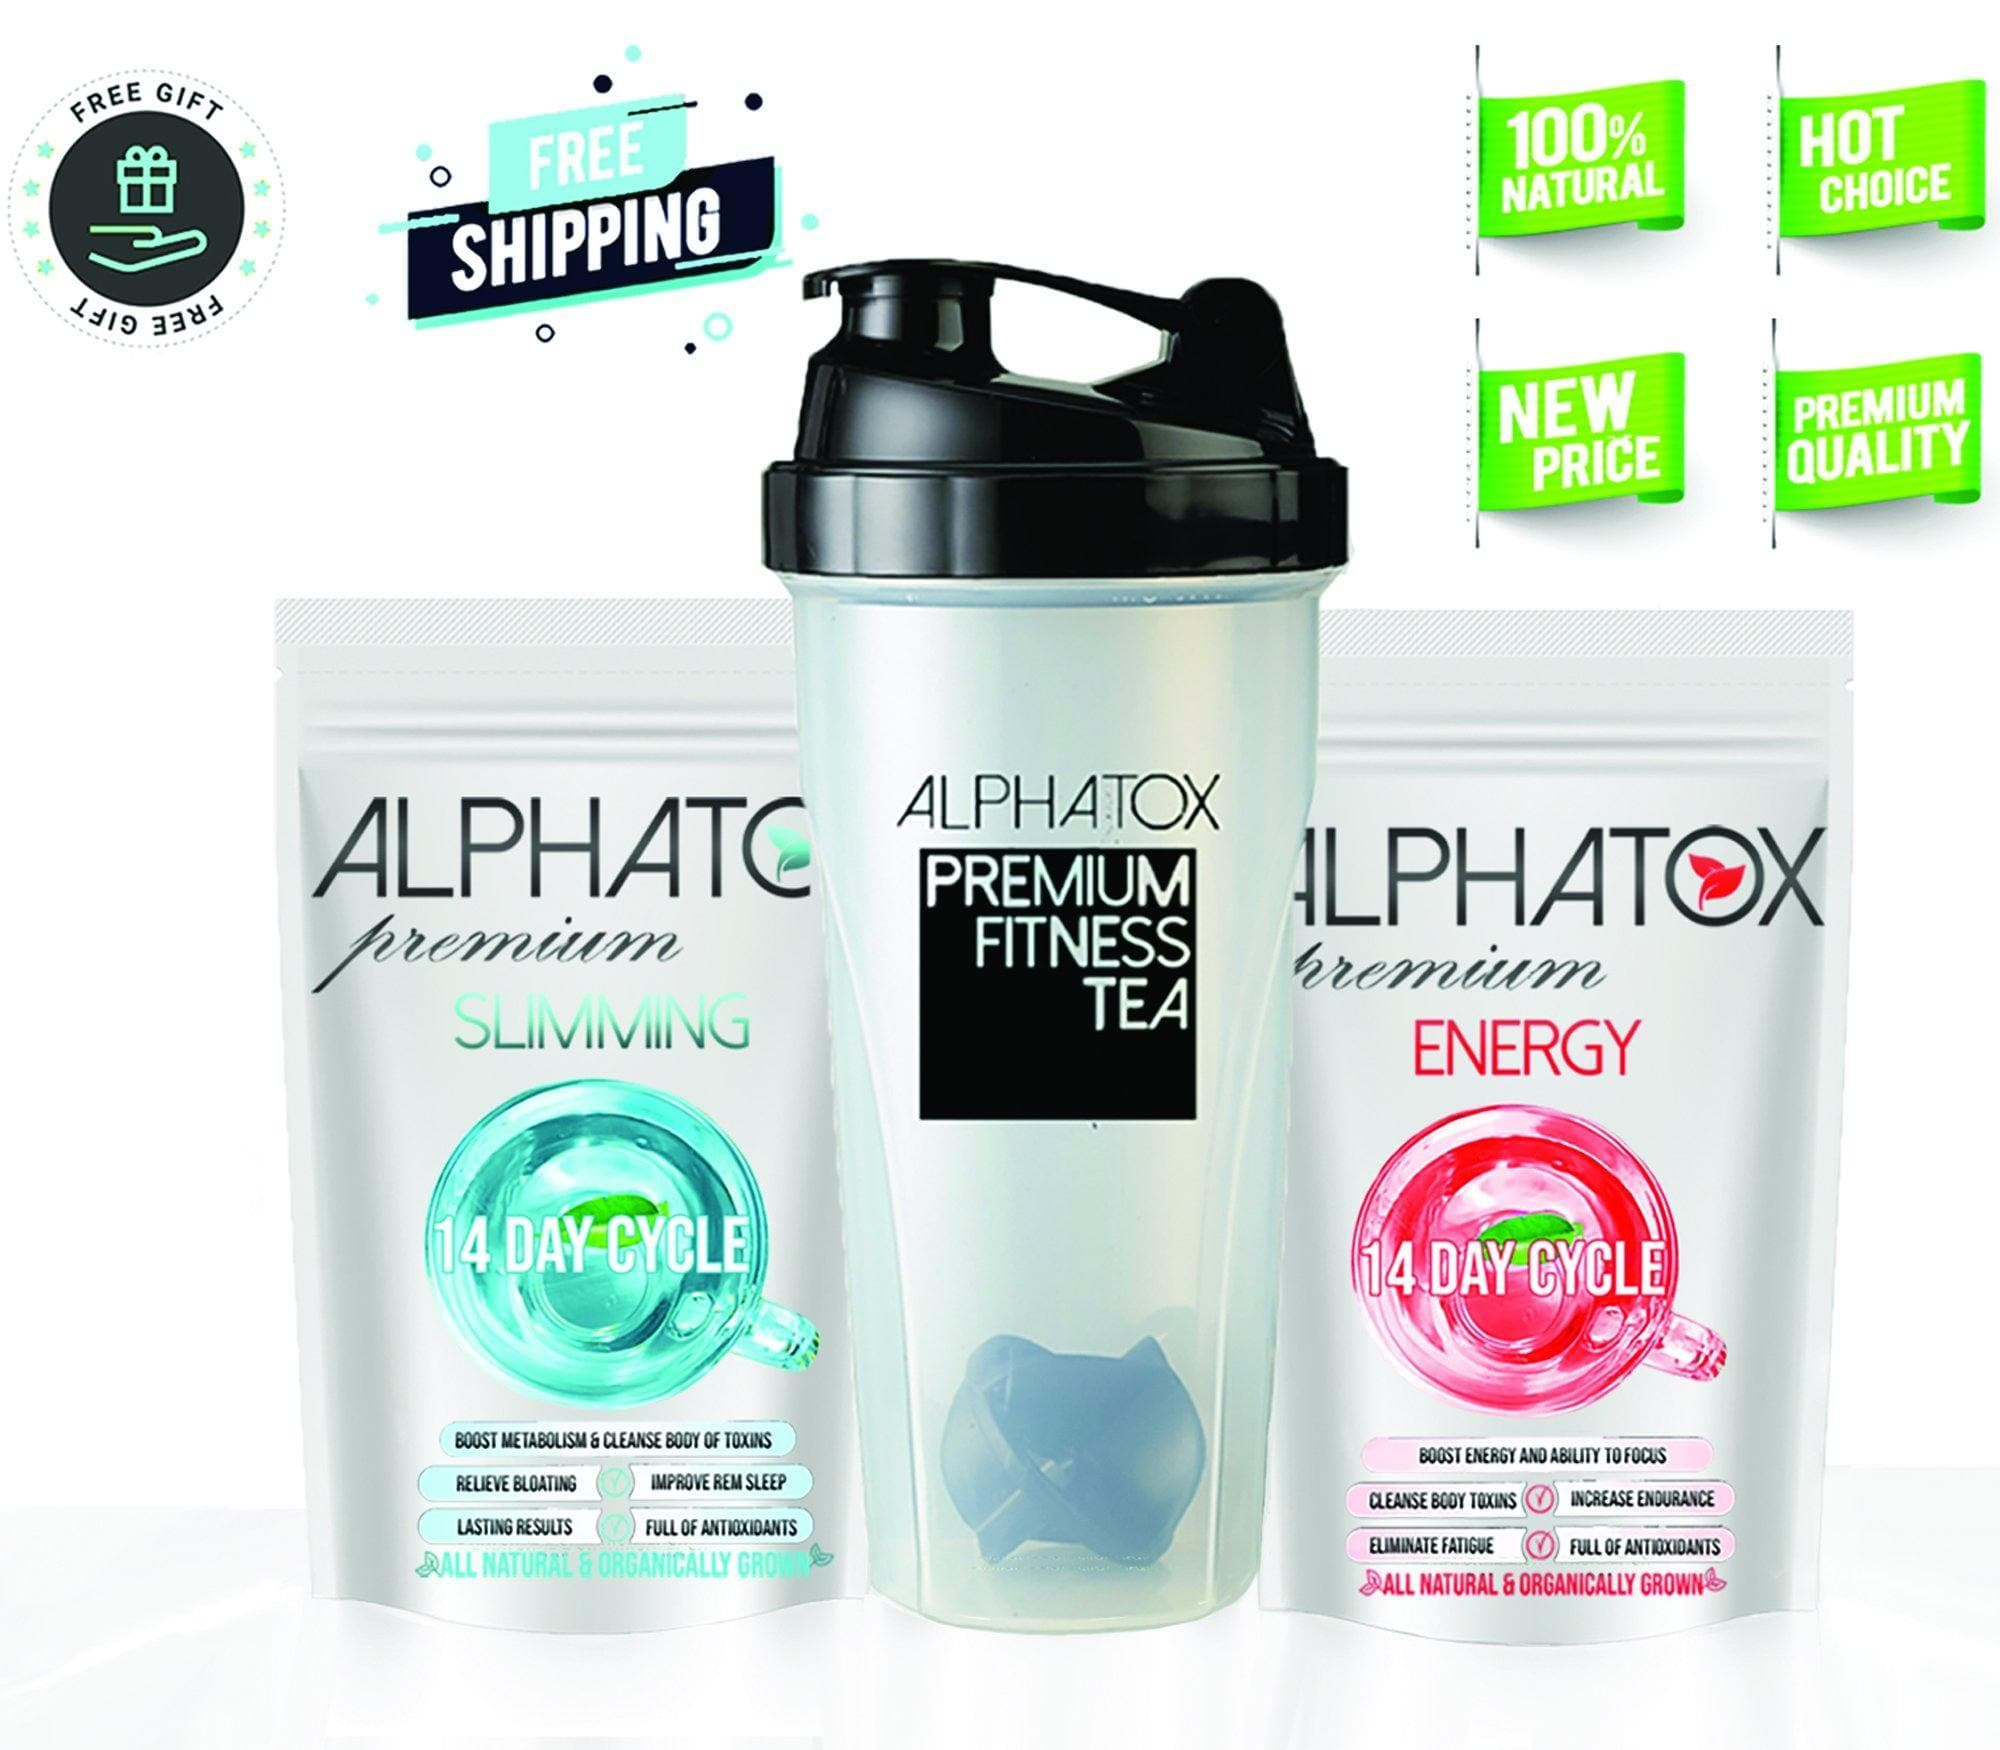 Alphatox™ Flat Tummy Bundle (14 Day Program) - Alphatox Premium Fitness Teas